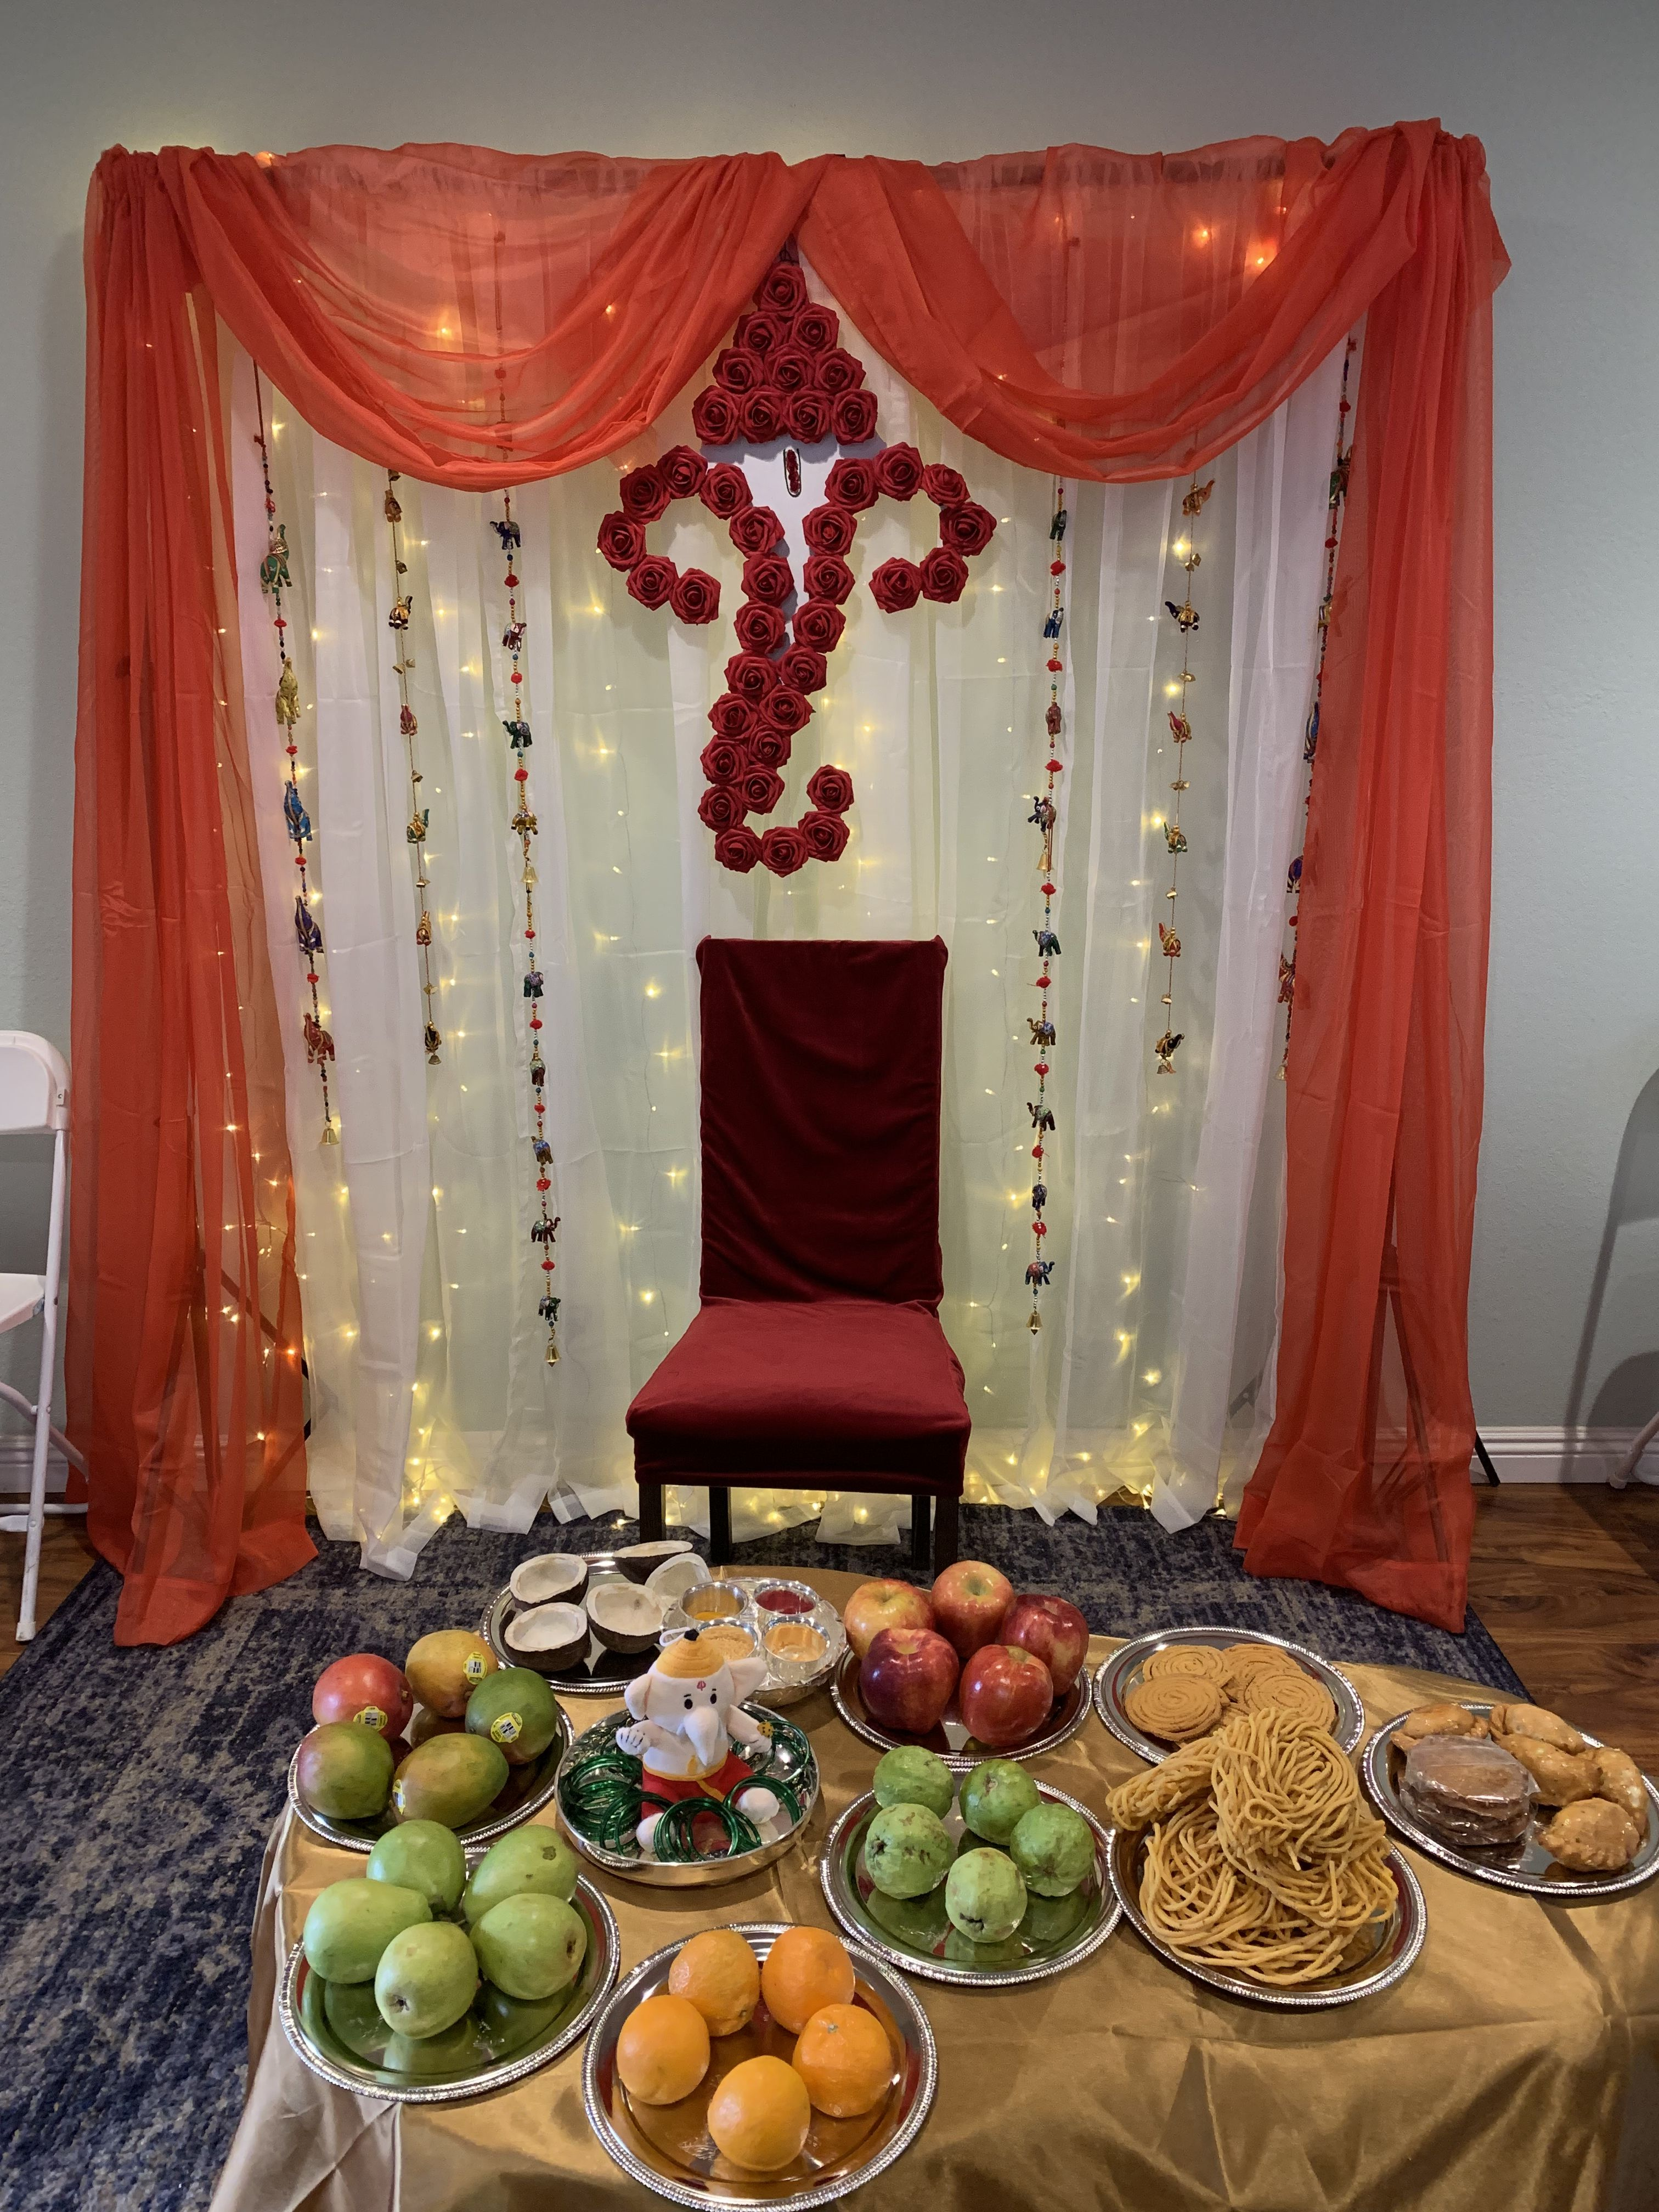 Baby Shower Stage Decoration Ideas In India : shower, stage, decoration, ideas, india, Seemantham, Decoration, Indian, Shower, Decorations,, Ganpati, Home,, Housewarming, Decorations